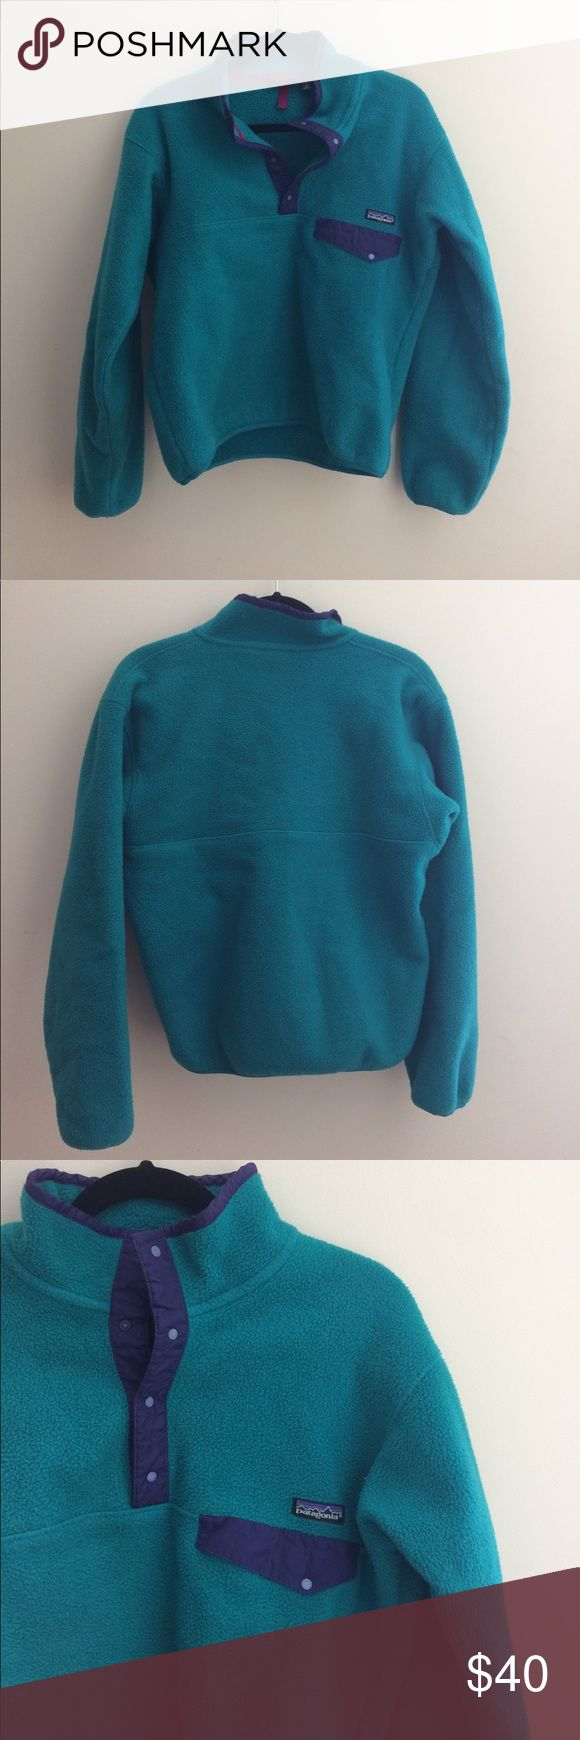 Patagonia pullover Good condition, keeps you warm, no stains or rips. Smoke free home. Patagonia Jackets & Coats